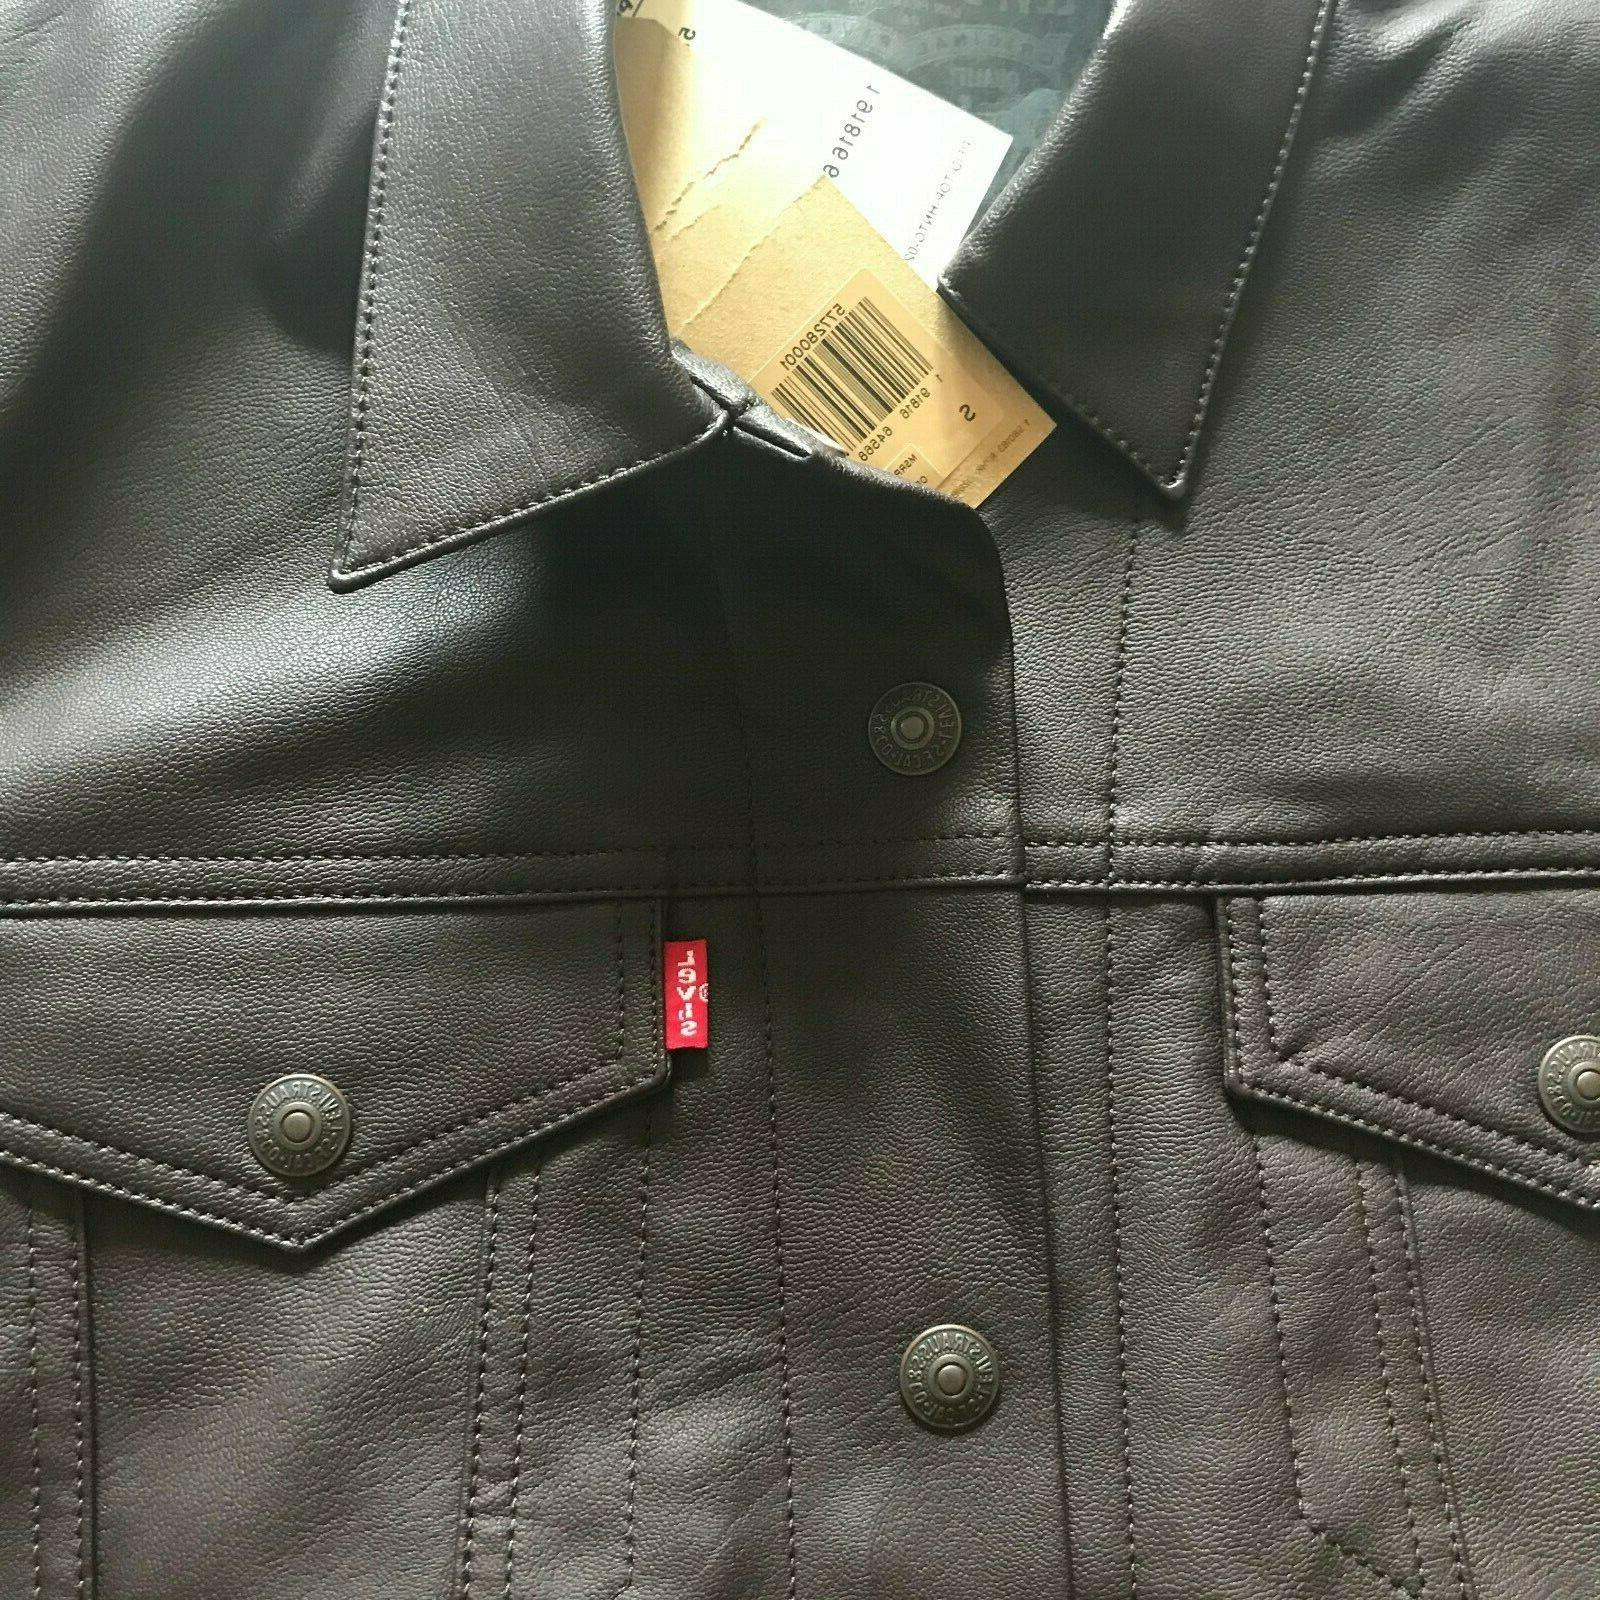 NWT Men's Brown Leather Trucker Jacket Outerwear Size S